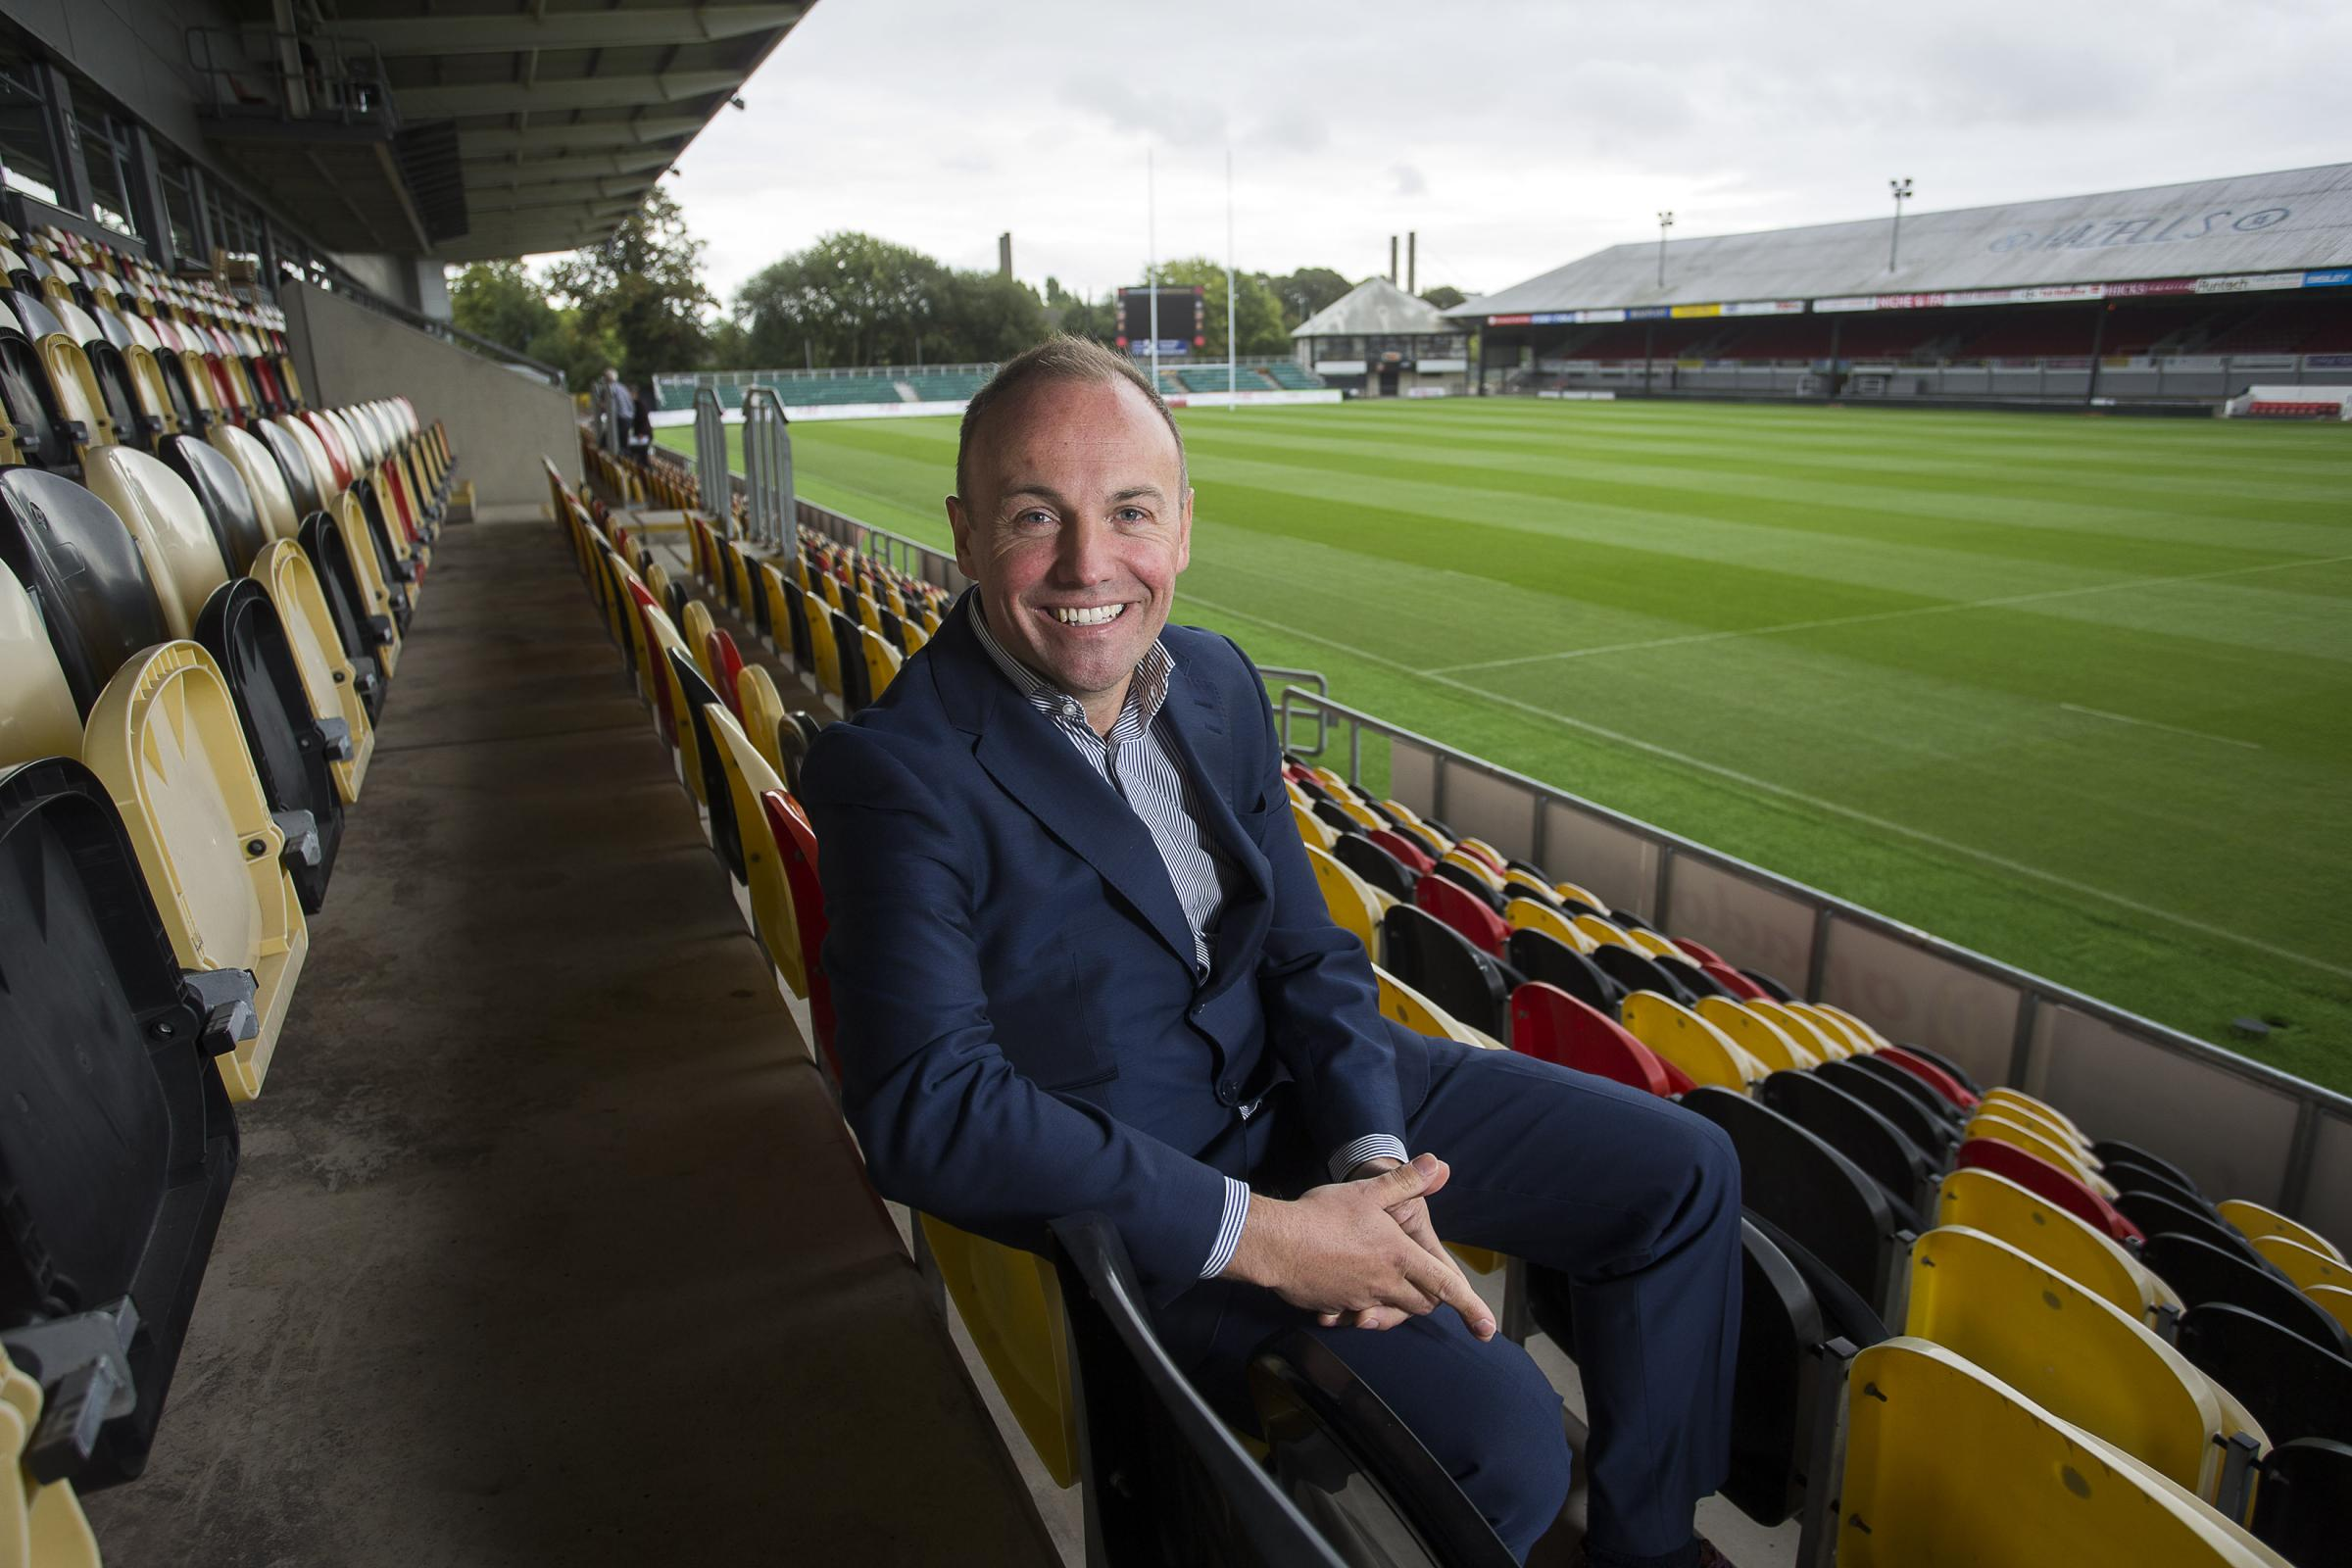 ENCOURAGED: Chairman David Buttress is pleased with the Dragons' season ticket sales, but knows results must improve